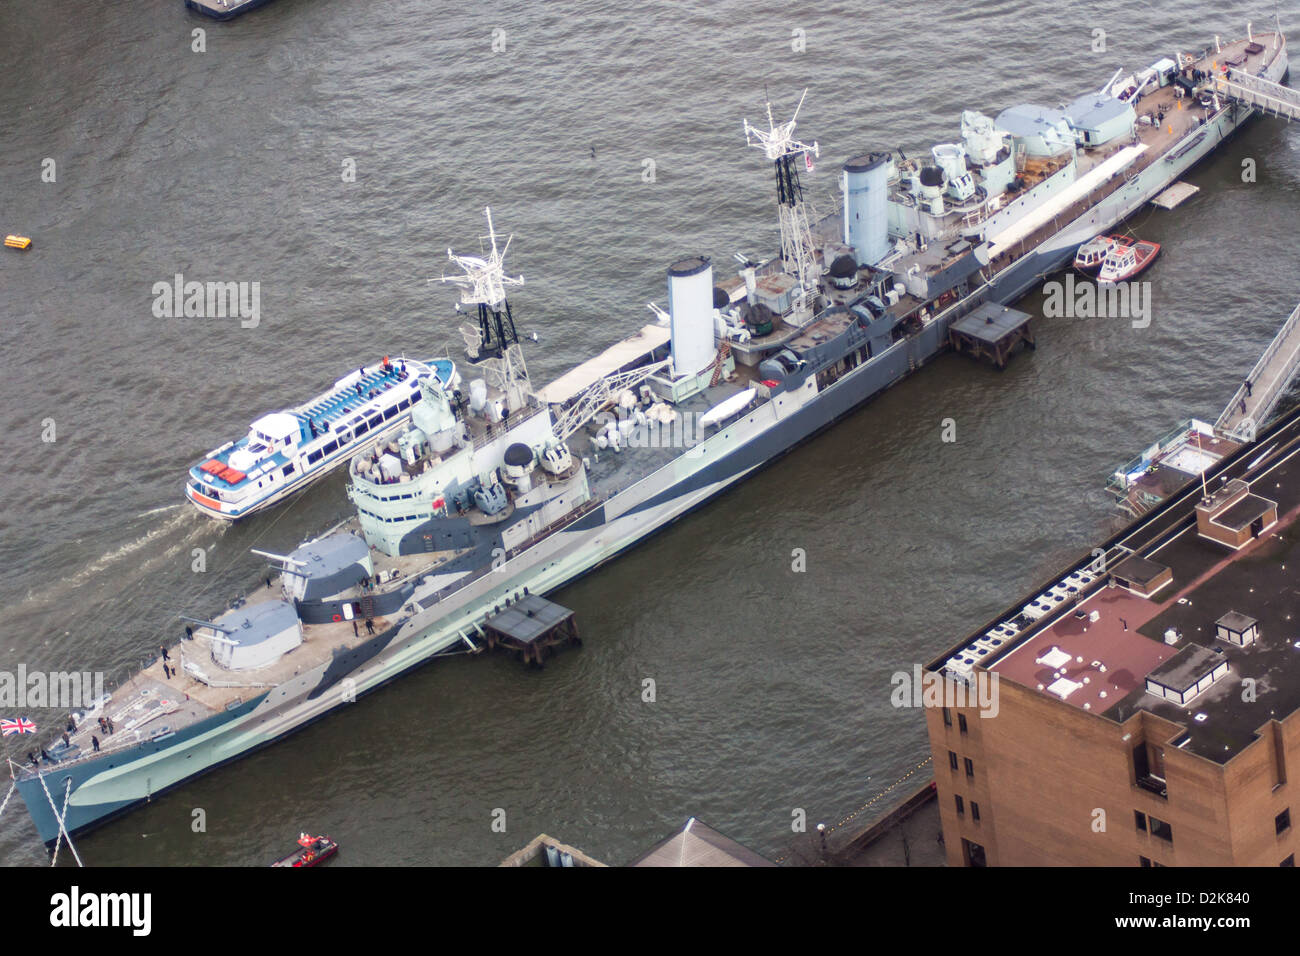 HMS Belfast from the Shard - Stock Image